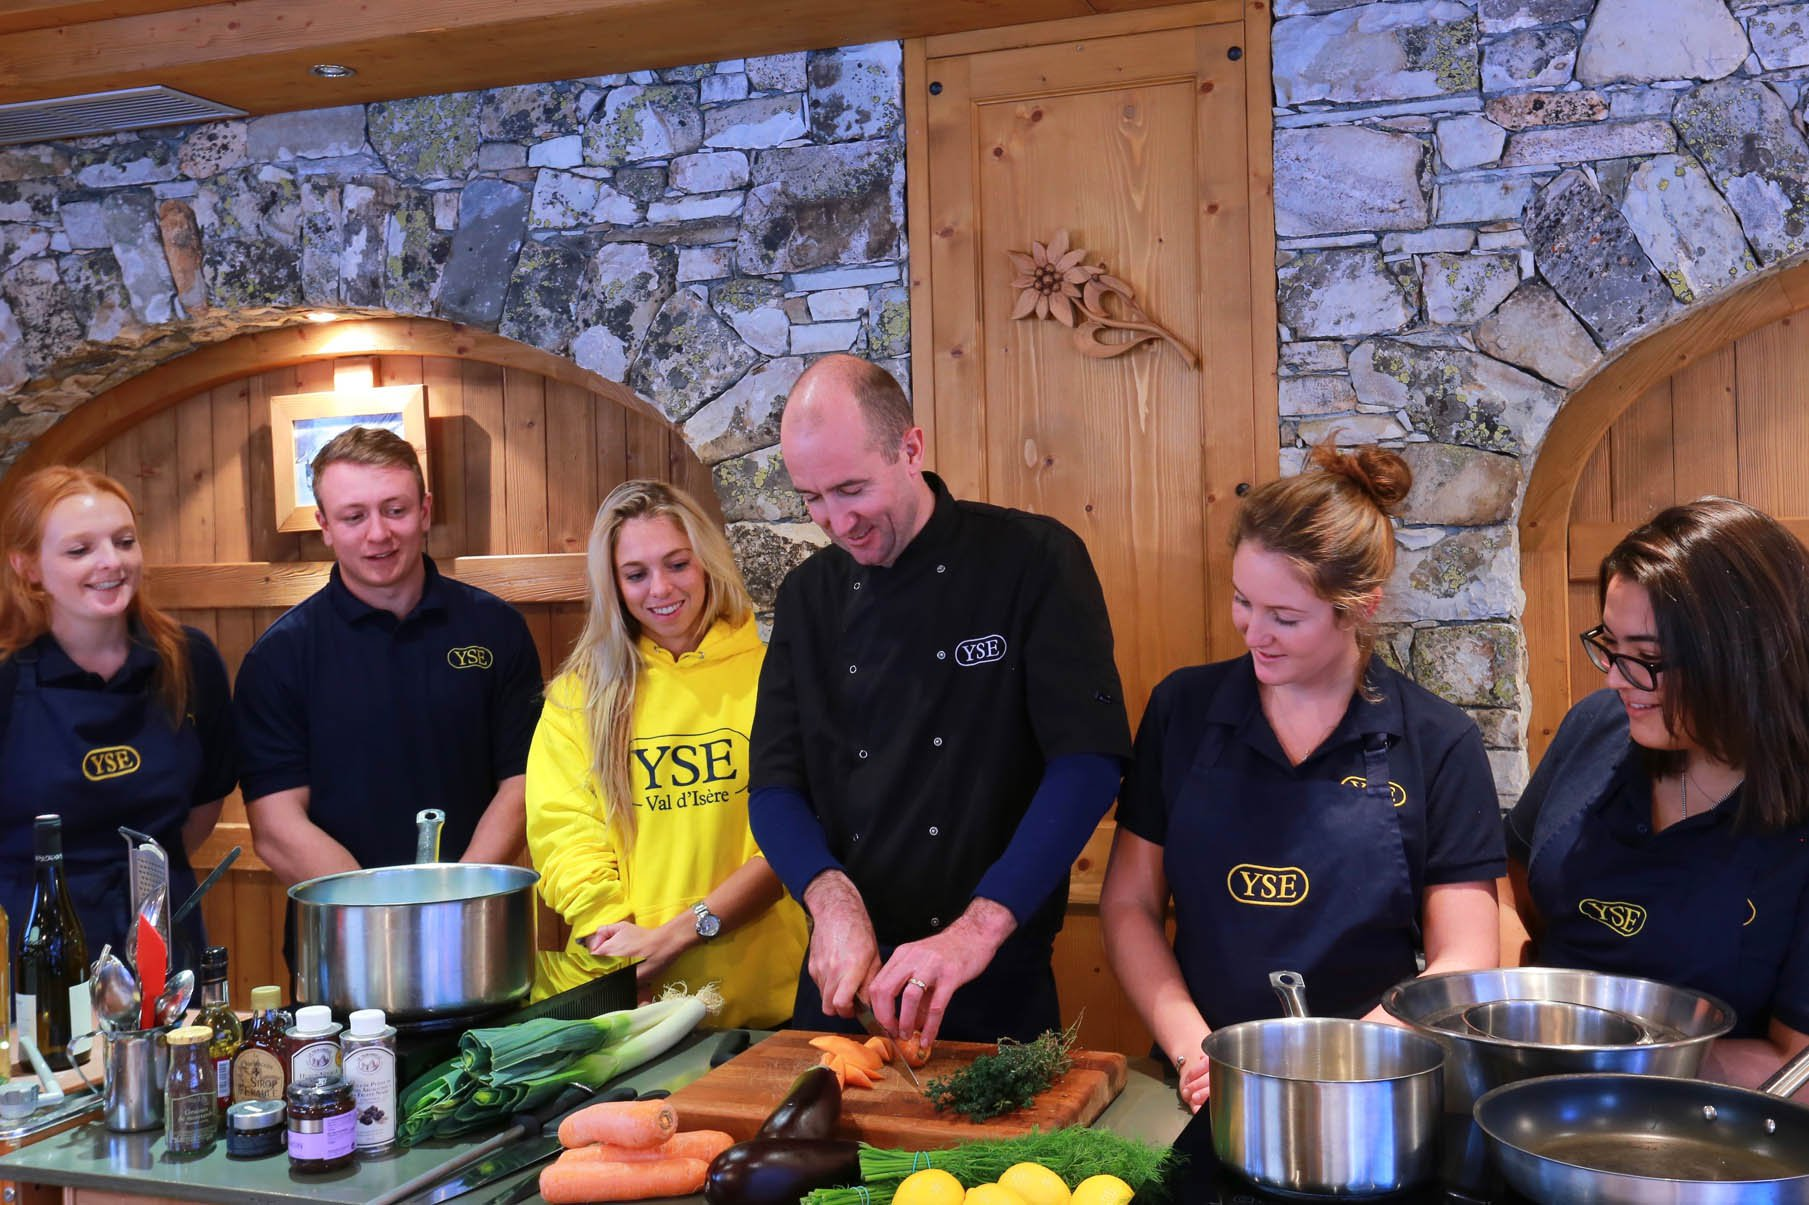 Cookery course